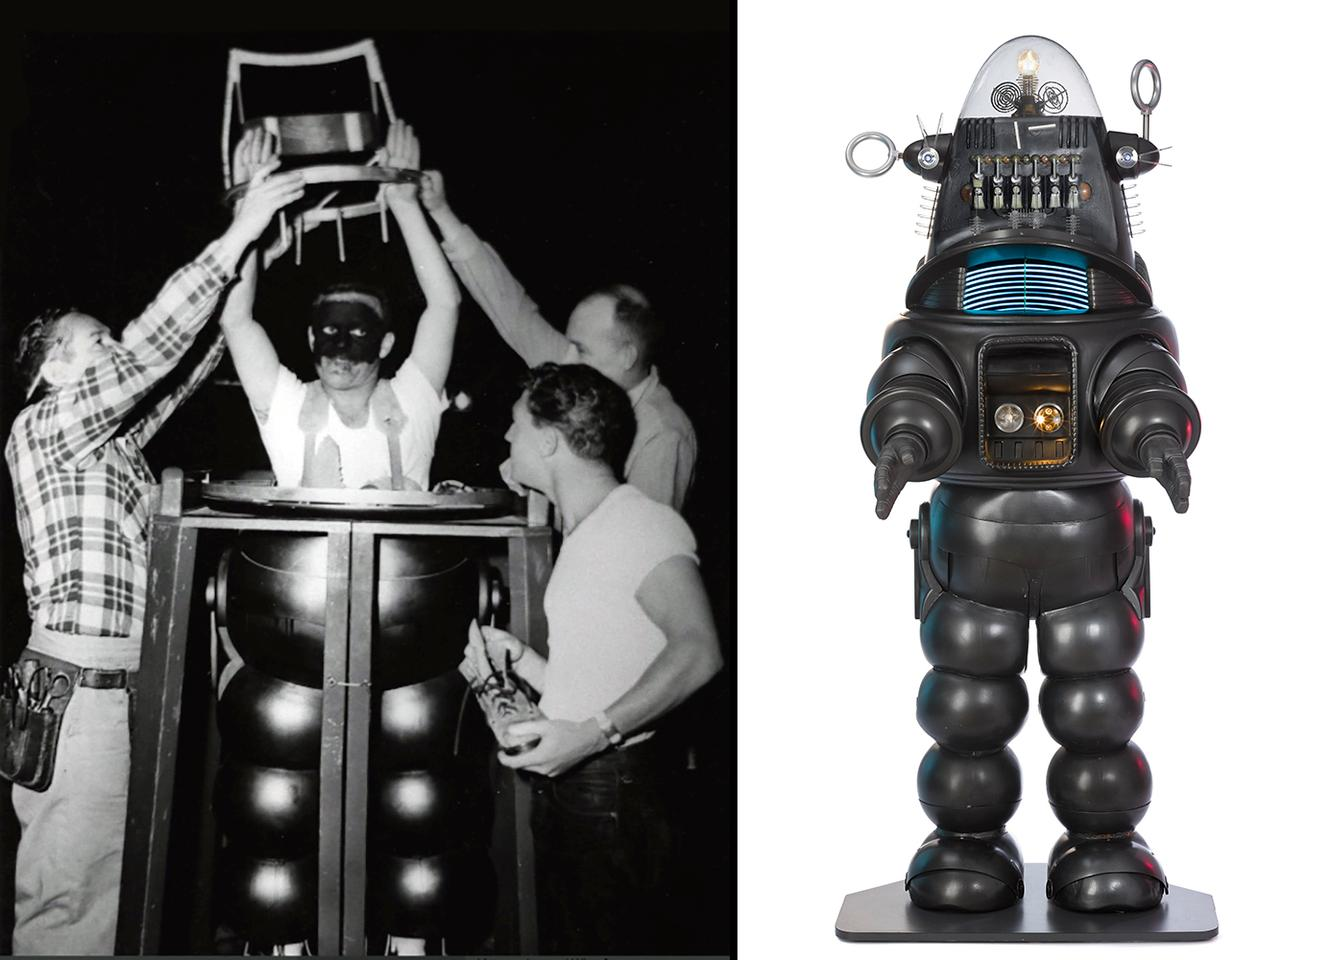 Robby the Robotmay have first appeared in the 1956 movieForbidden Planet, but his film and TV appearances number more than 30, including movies such asThe Invisible Boy,Phantom EmpireandGremlins, and his TV show appearances included episodes ofMy Little Margie,The Thin Man,Columbo,The Addams Family,Lost in Space,The Twilight Zone,The Man from U.N.C.L.E.,Mork & Mindy,Project U.F.O.and Ark II.